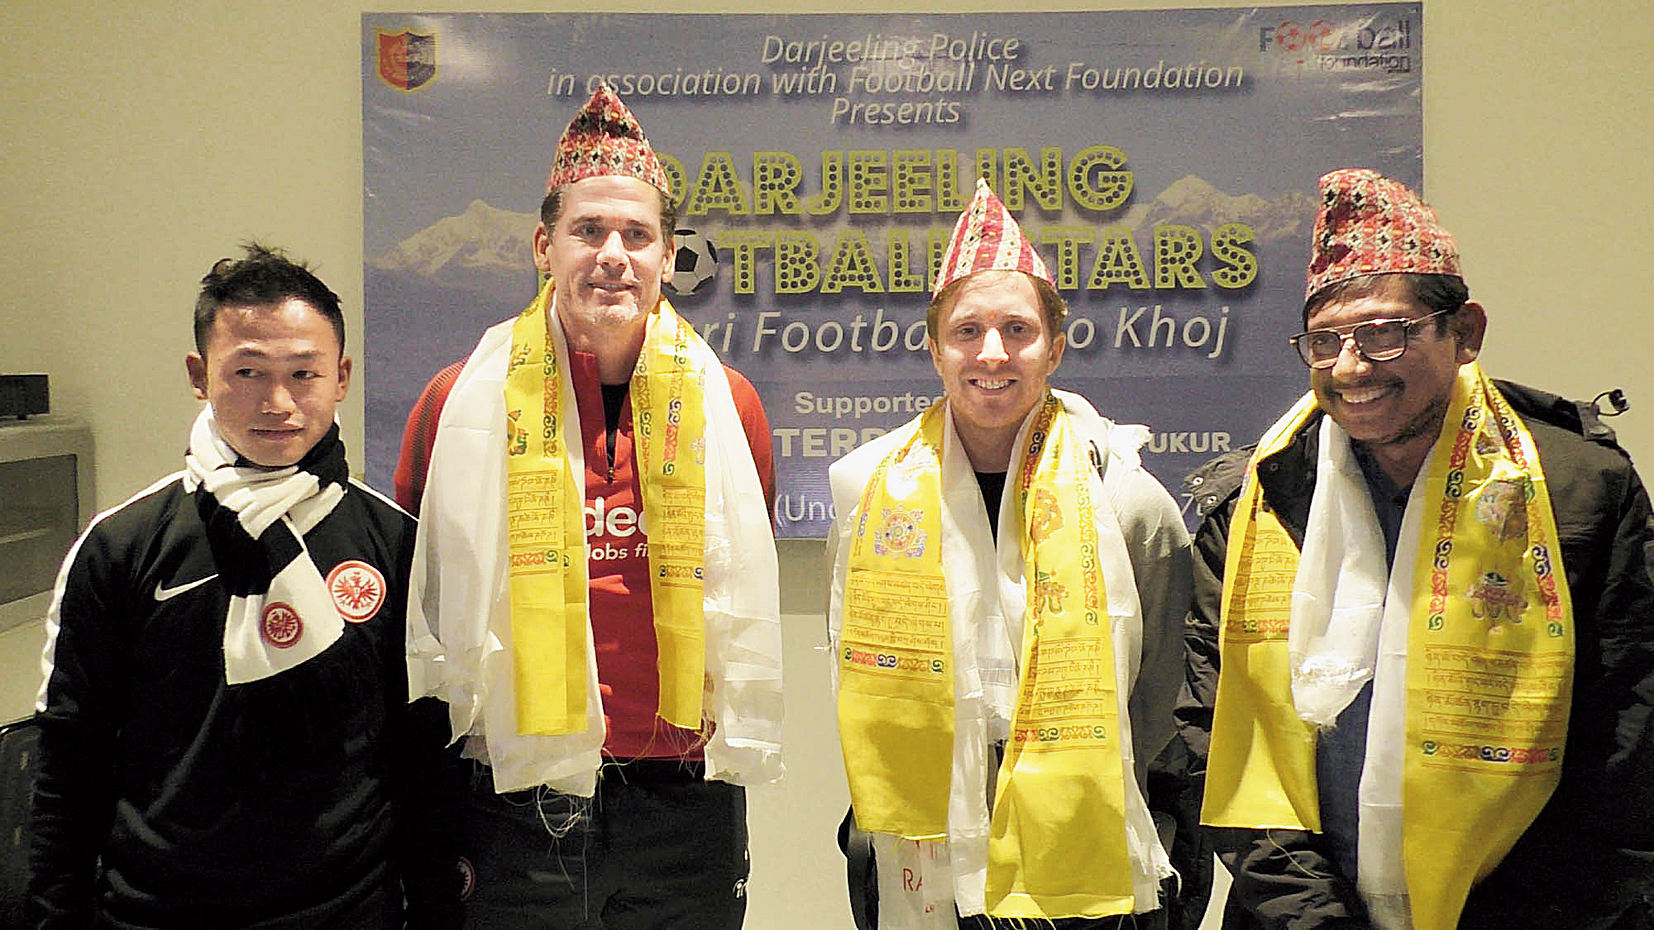 (From left) Player Manish Subba with Eintracht Frankfurt officials, Nicolai Adam and Felix Hansvencl, and Kaushik Moulik in Darjeeling on Thursday